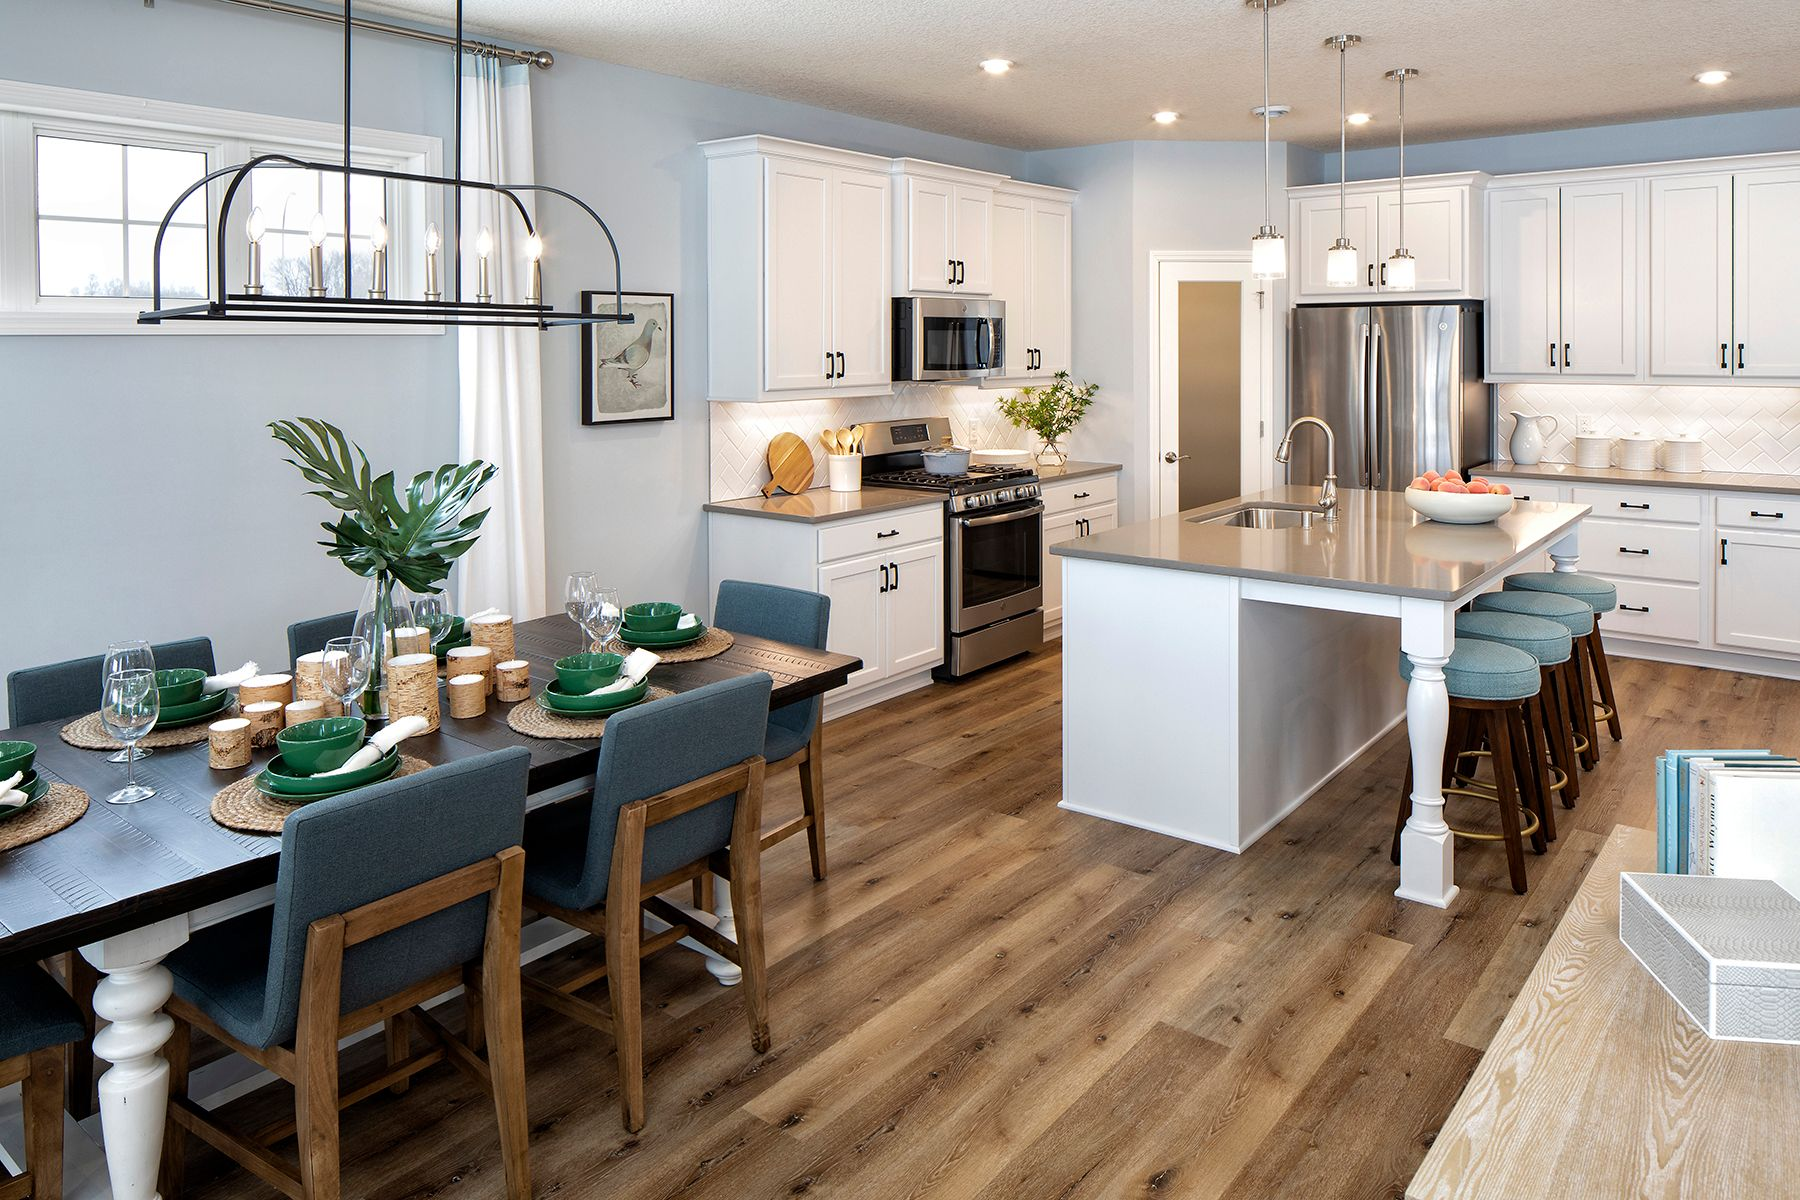 Kitchen featured in the Cedarwood By M/I Homes in Minneapolis-St. Paul, MN